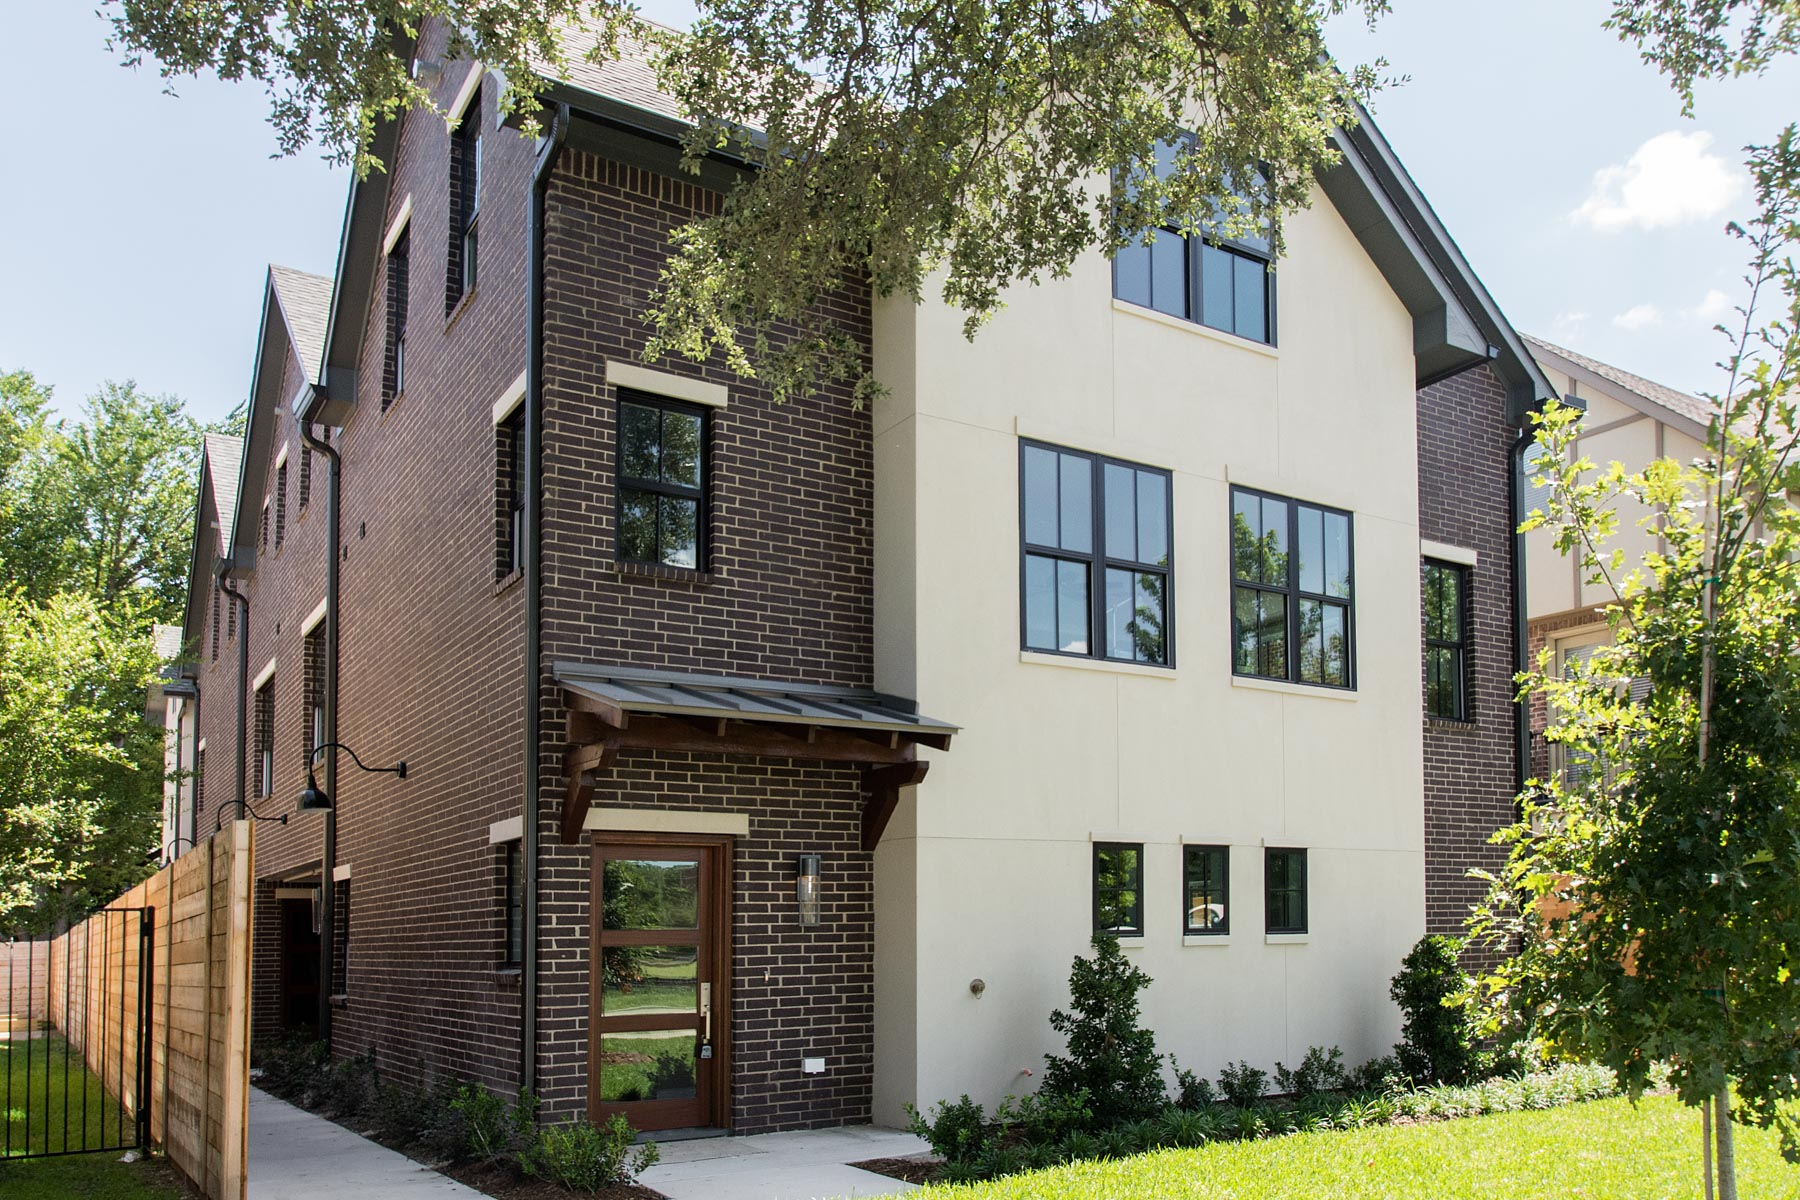 Moradia para Venda às 3-Story Contemporary New Construction 4121 Grassmere Ln 2 Dallas, Texas, 75205 Estados Unidos